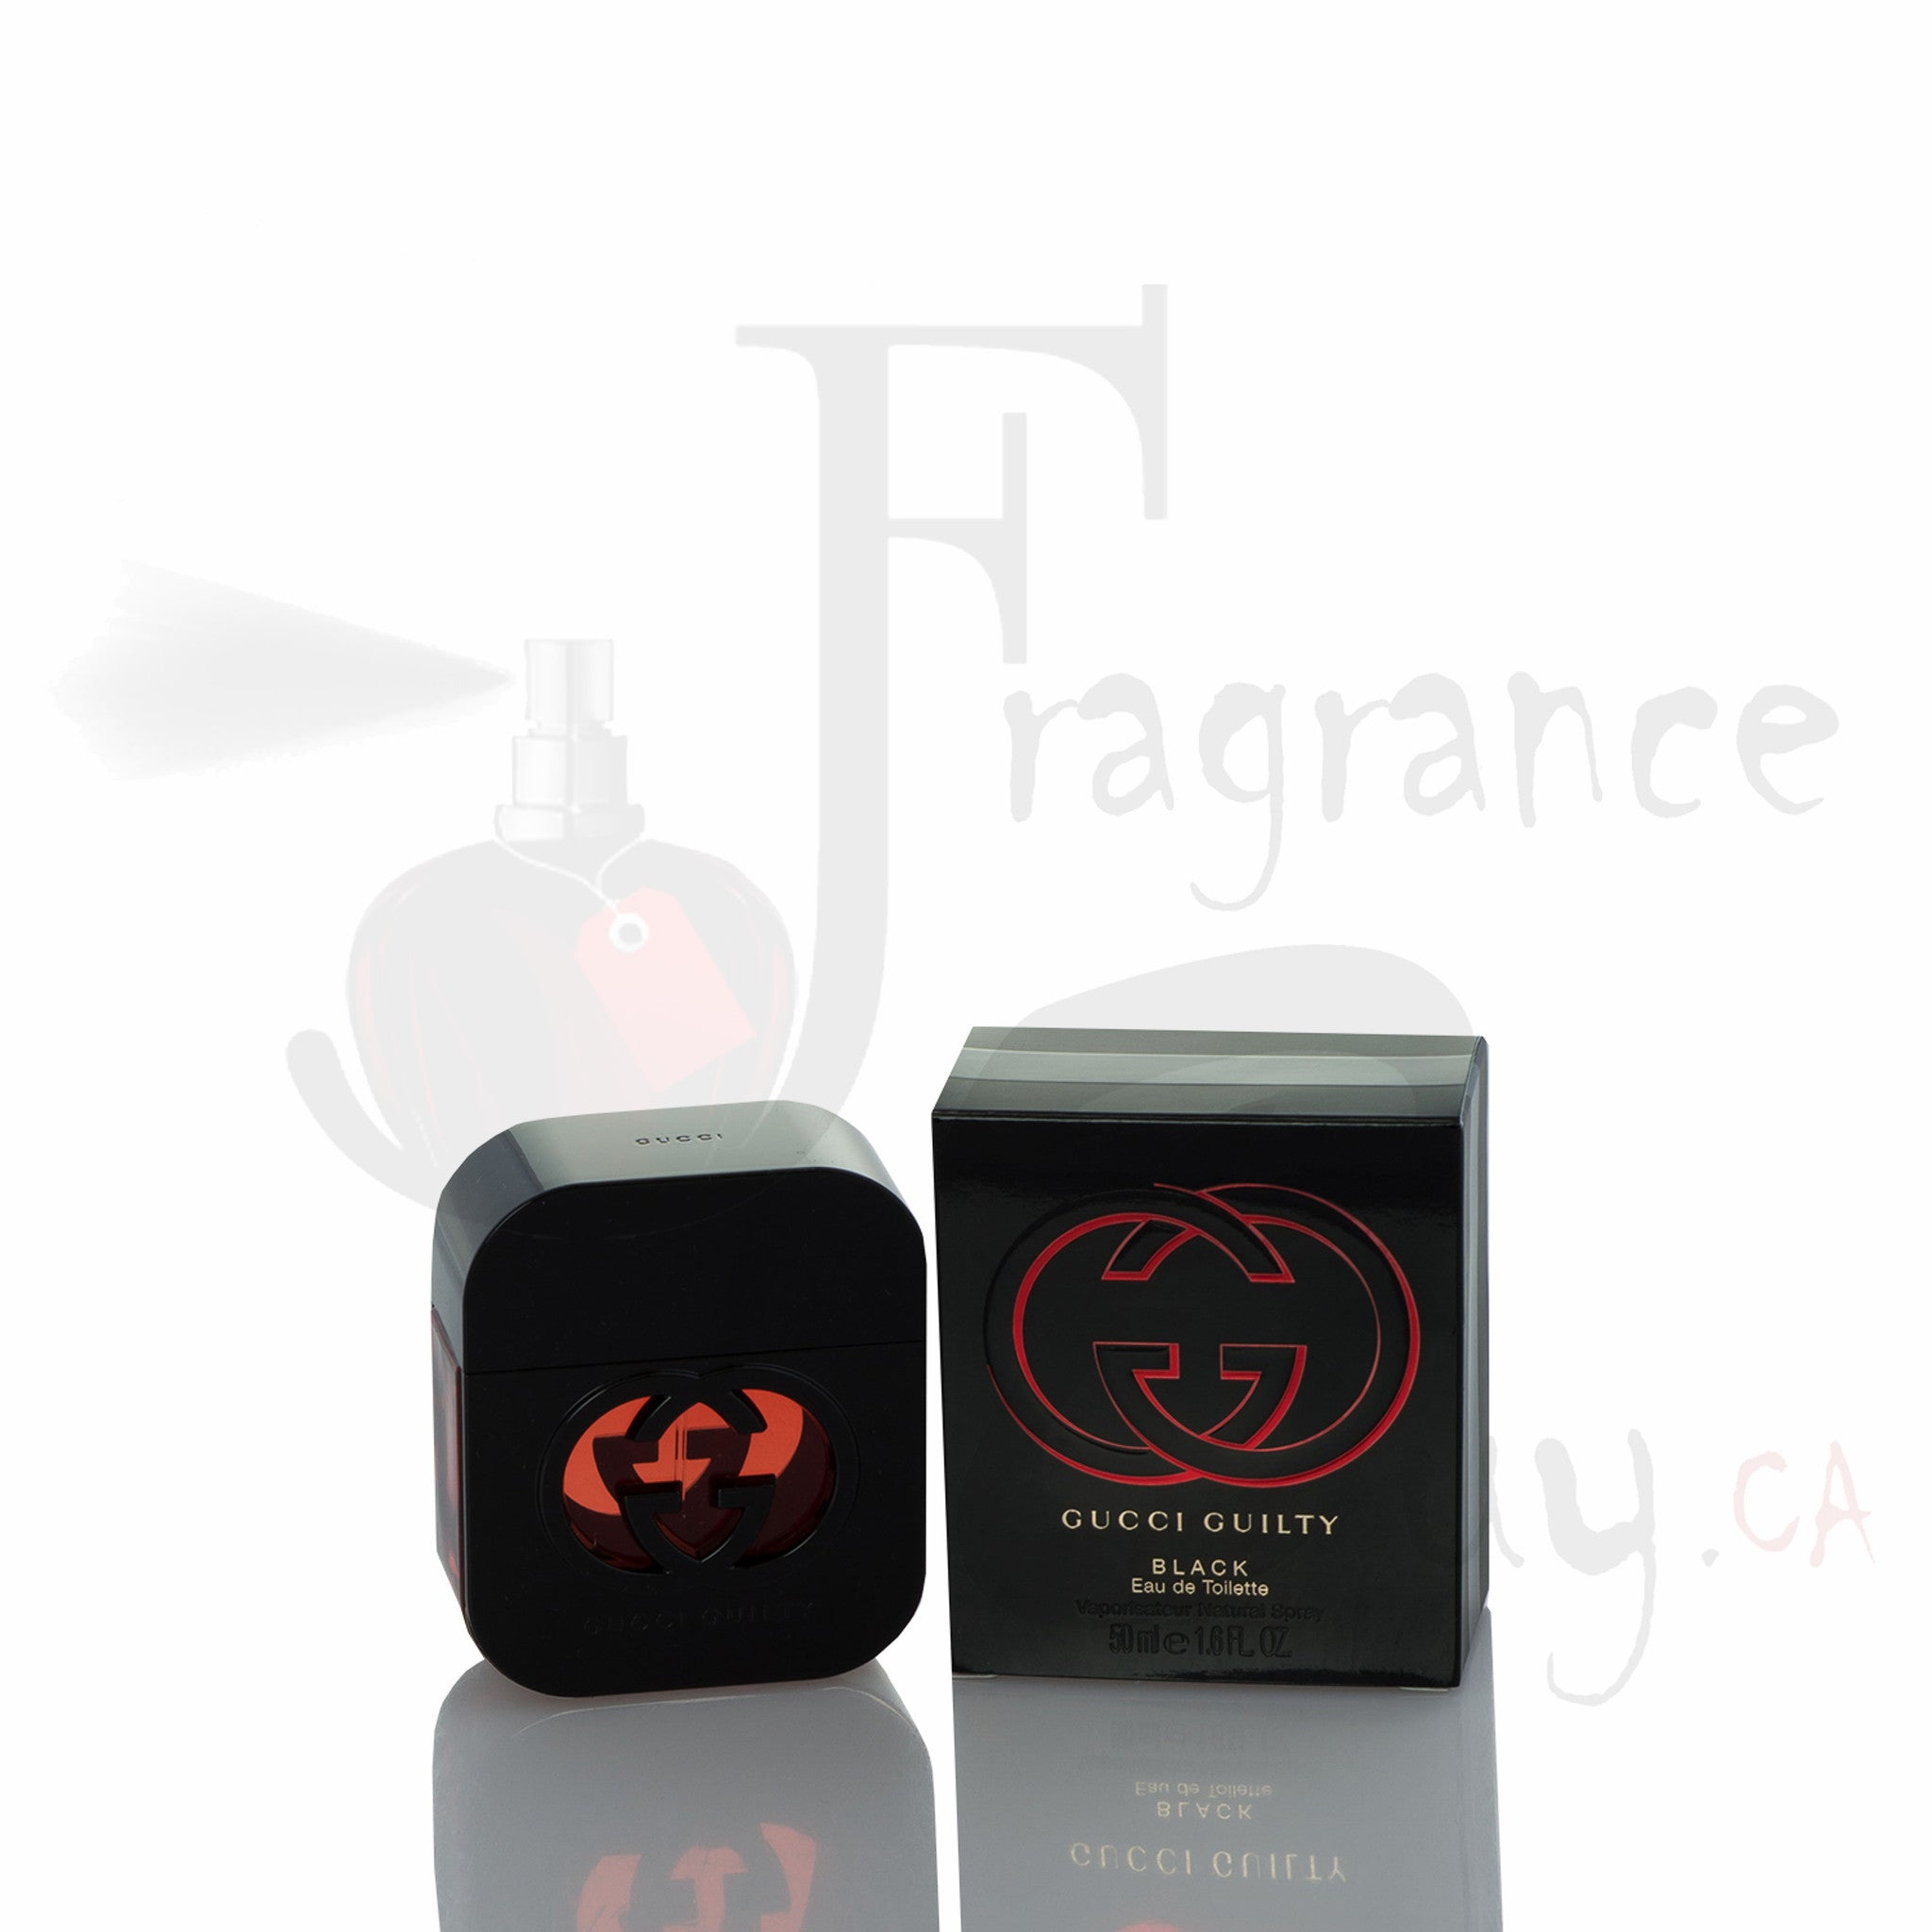 Gucci Guilty Black For Woman